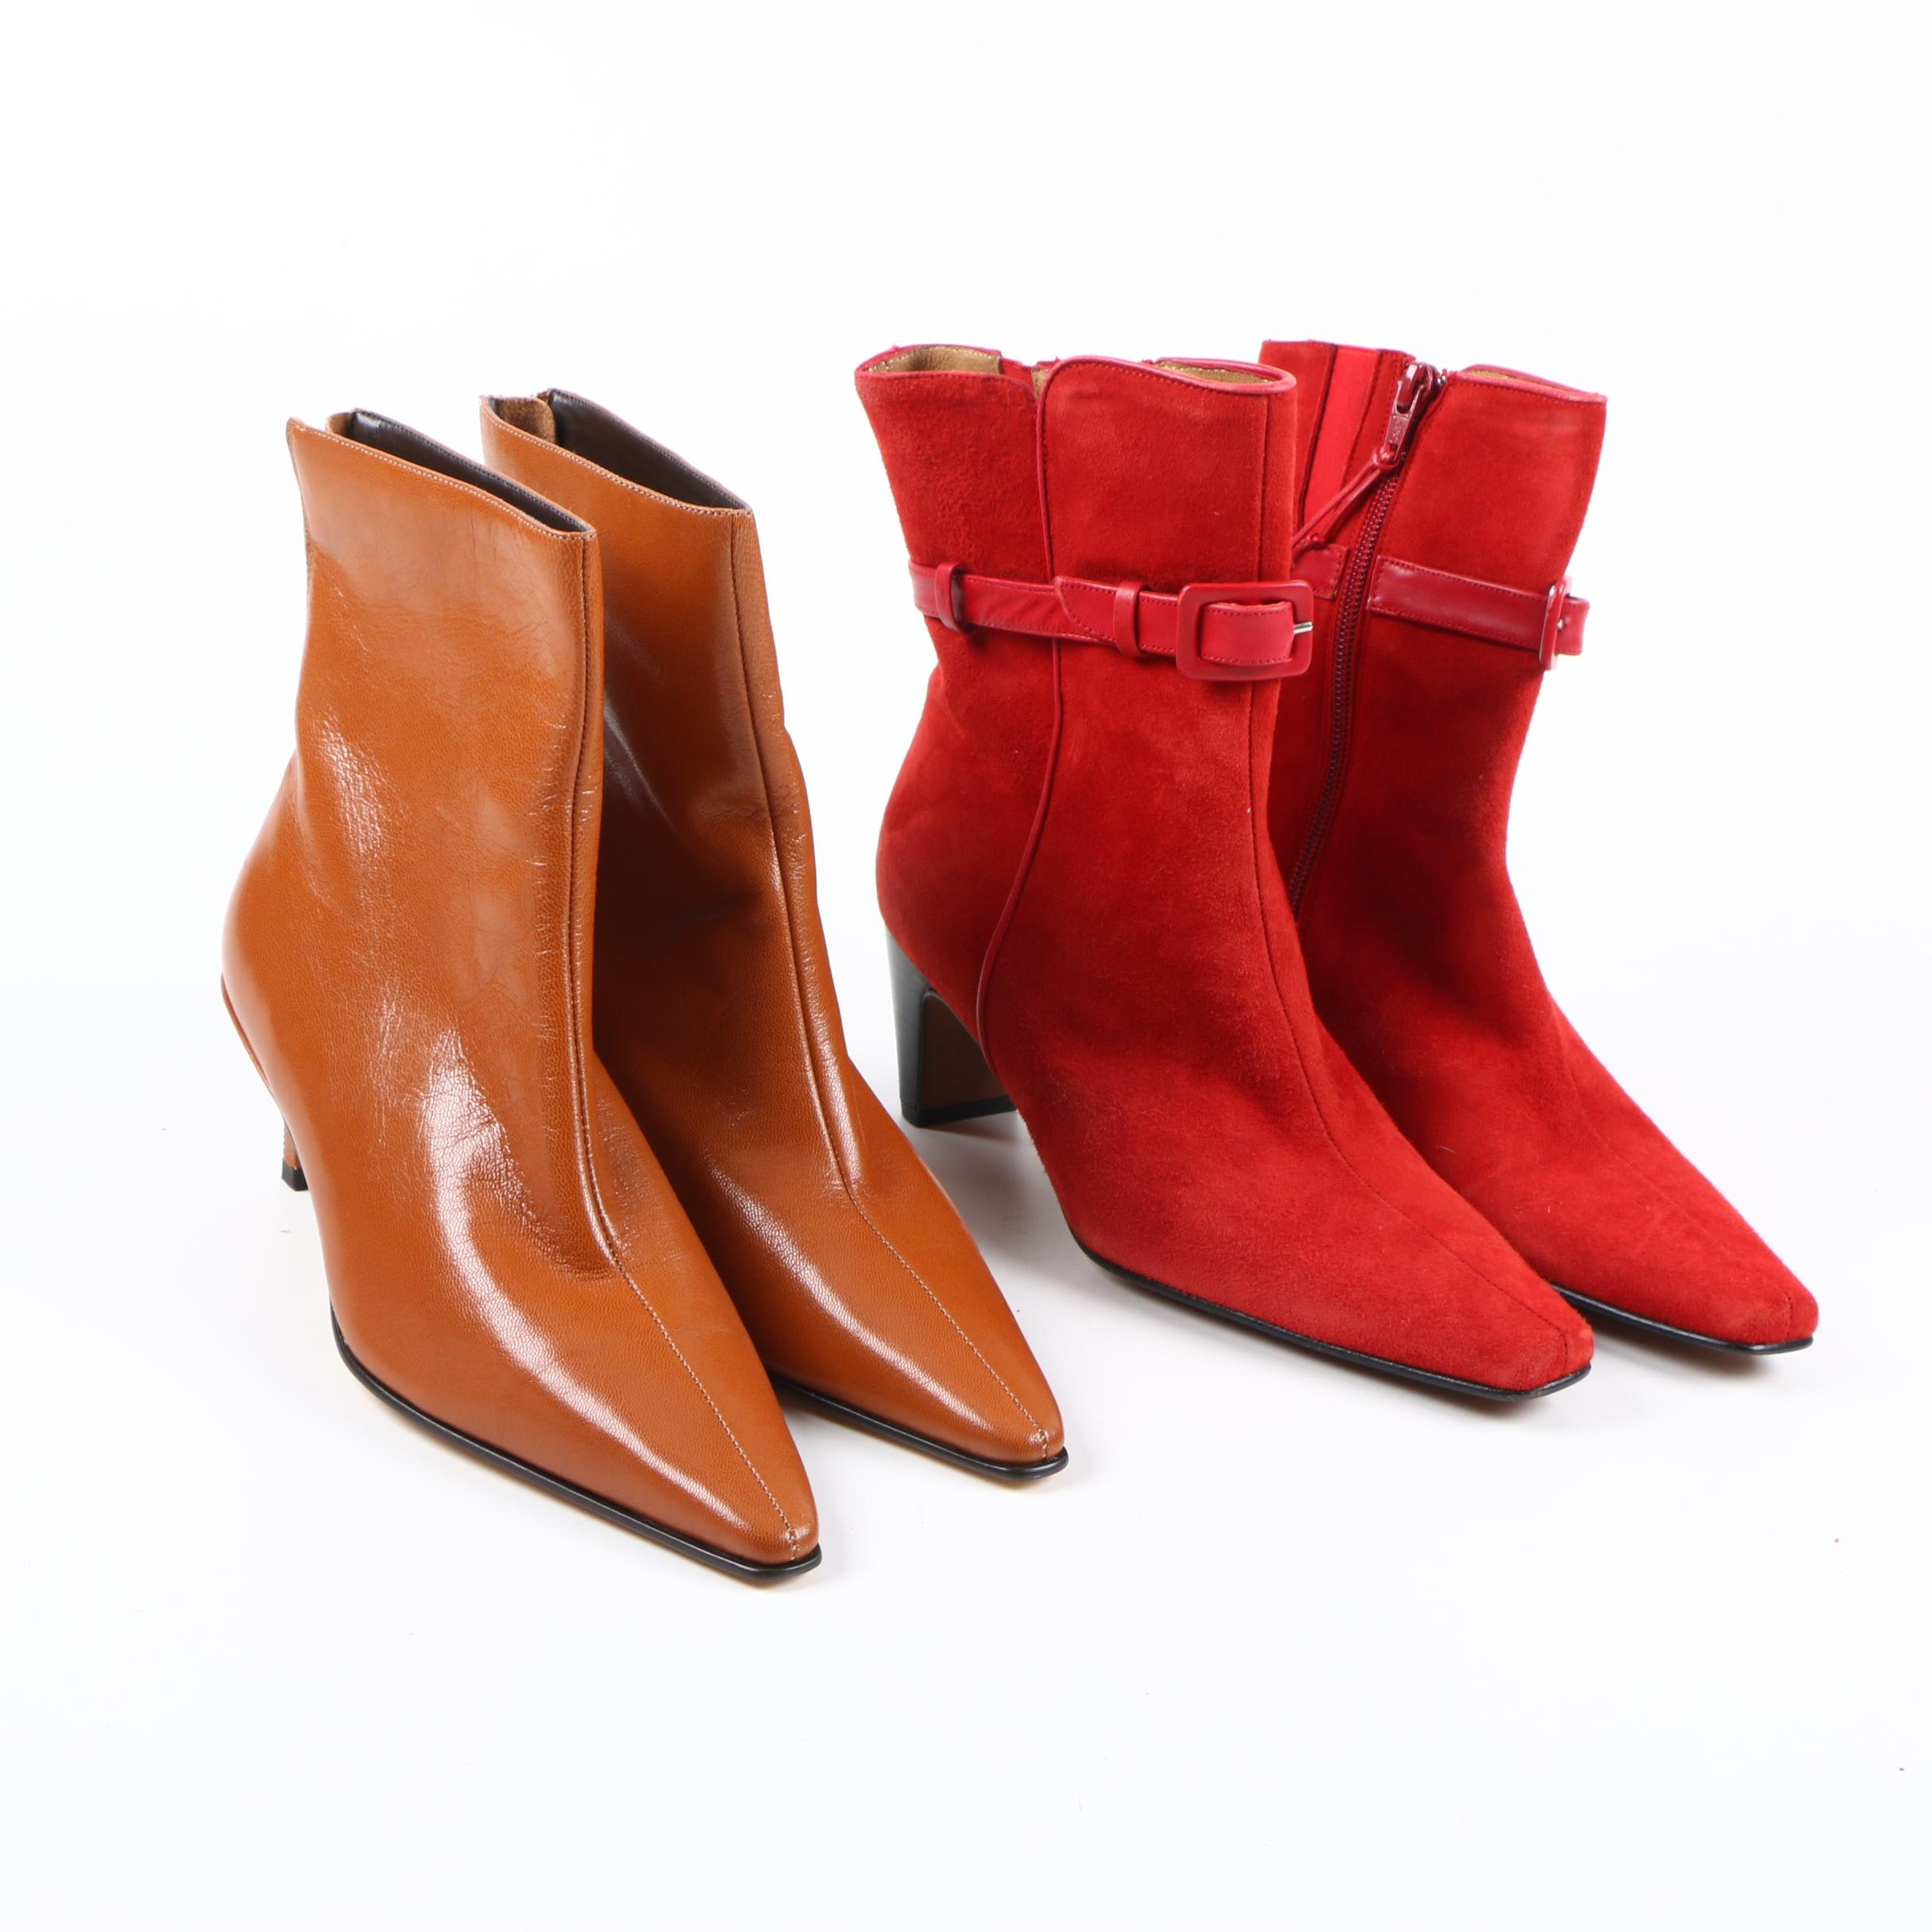 Two Pairs of Women's High Heeled Boots